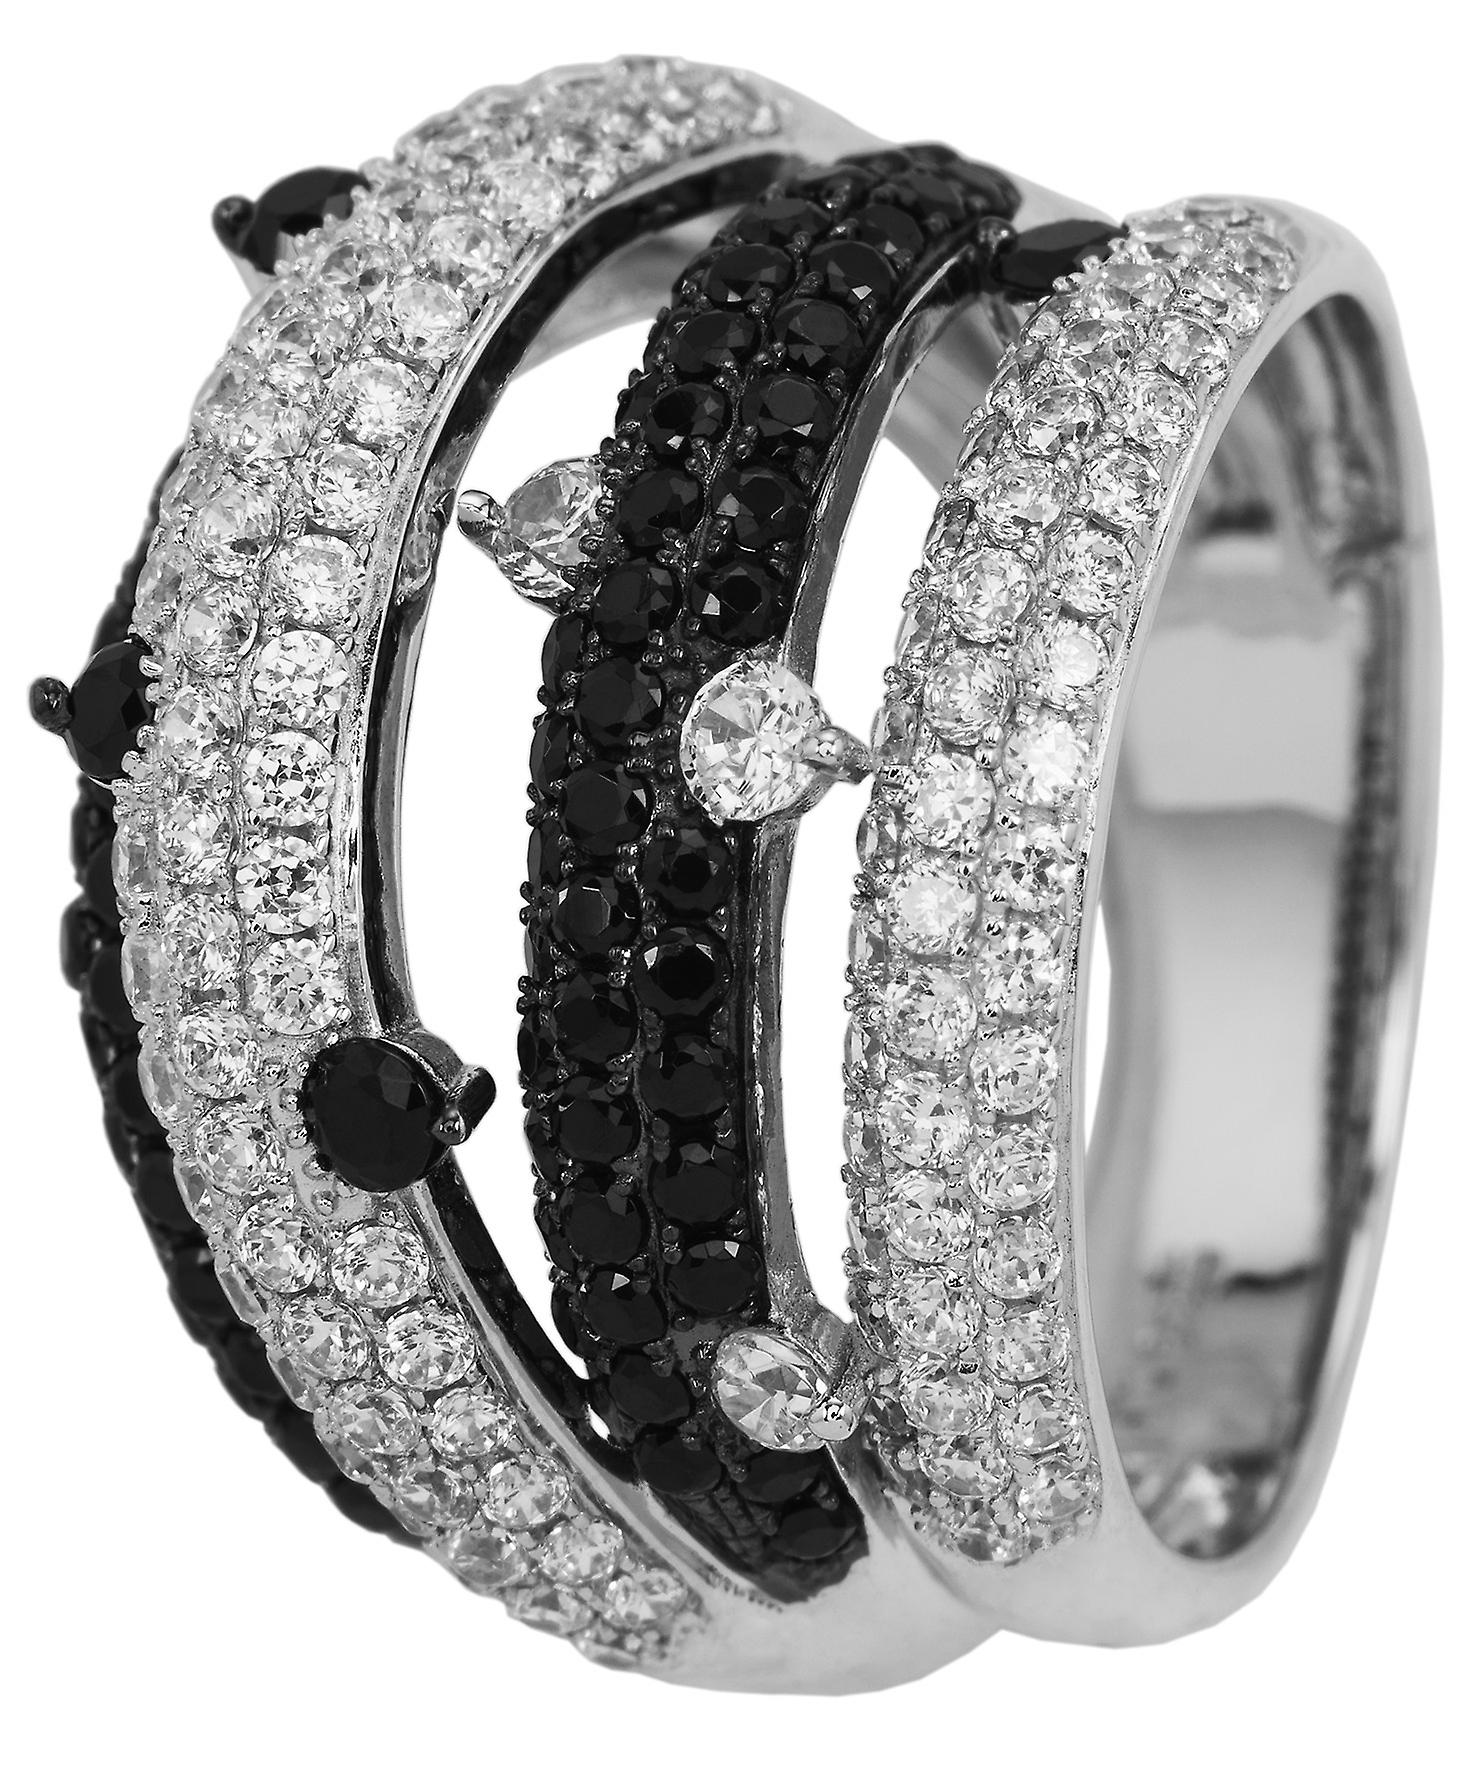 Burgmeister women's ring JBM2014-111, 925 sterling silver rhodanized, white zirconia